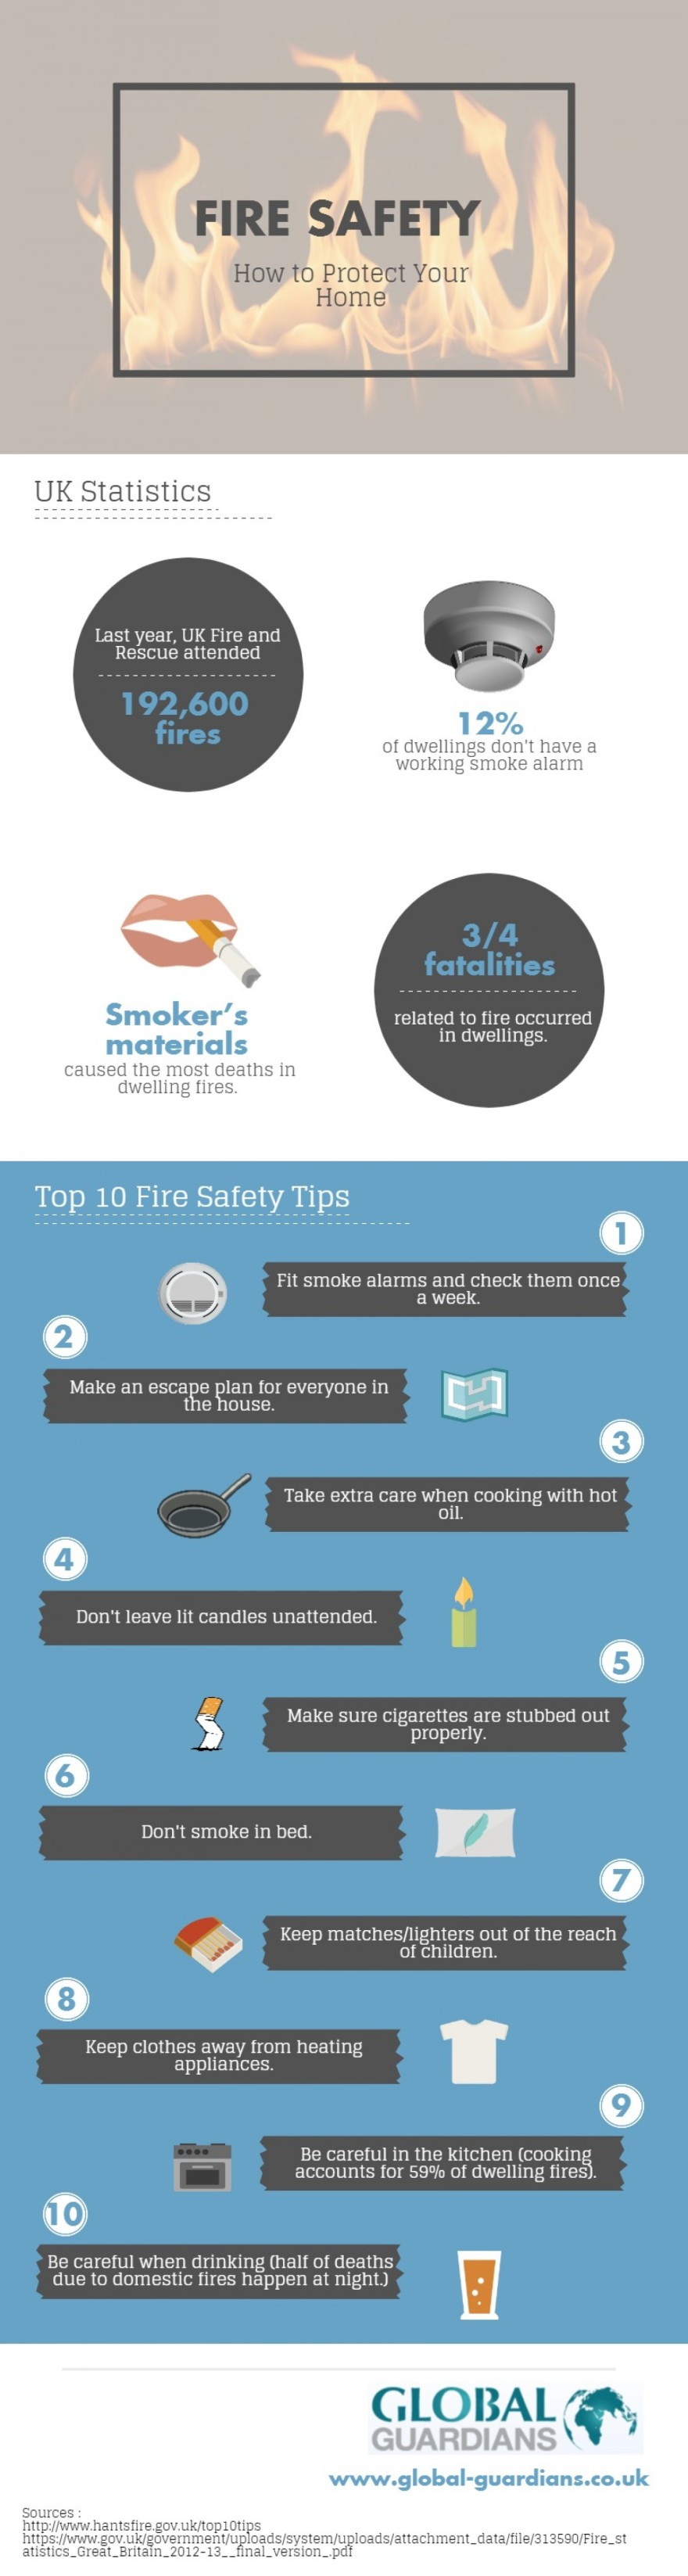 fire-safety-protect-your-home